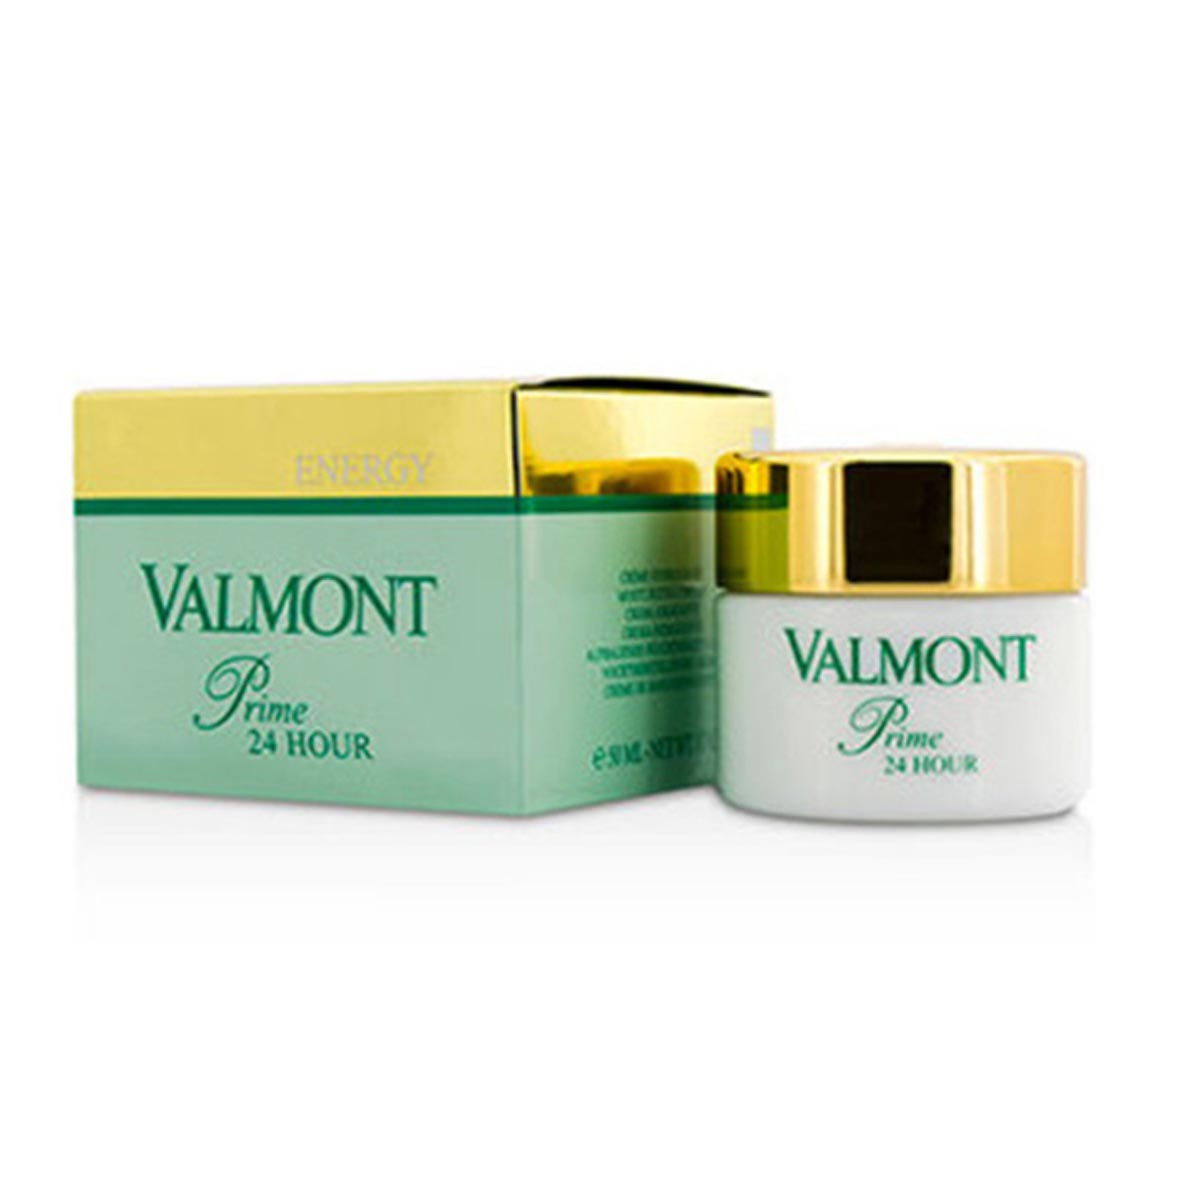 Valmont energy prime 24h cream 50ml